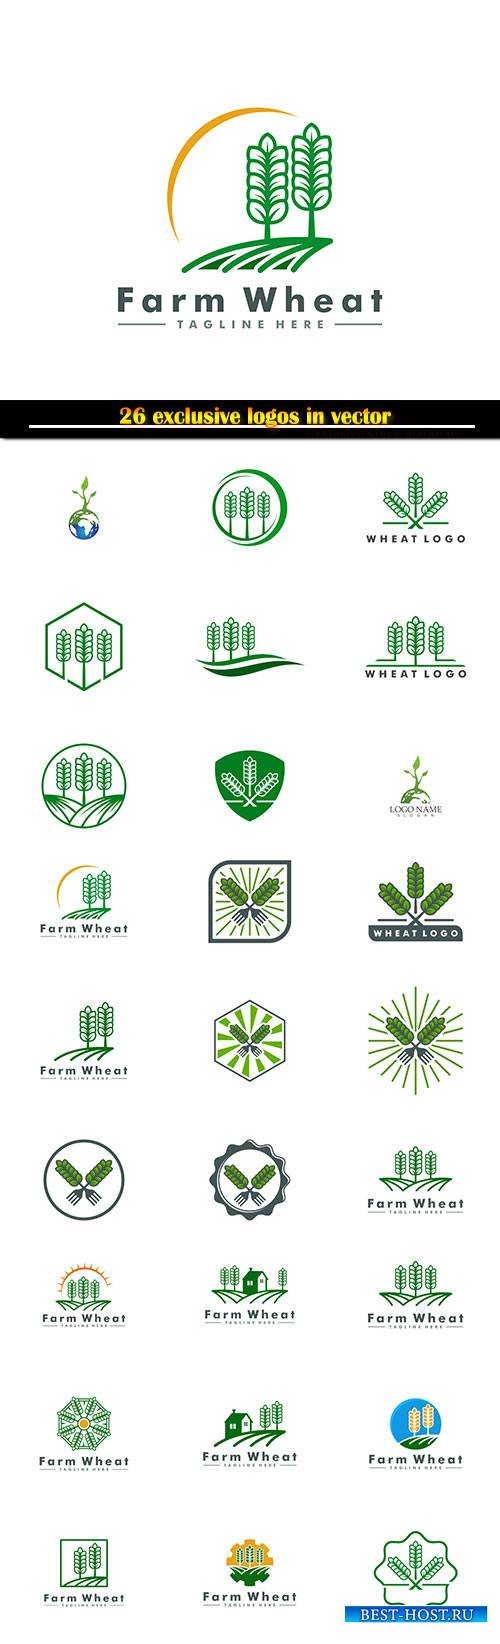 Logo agryculture vector illustration template, fresh food icon symbol